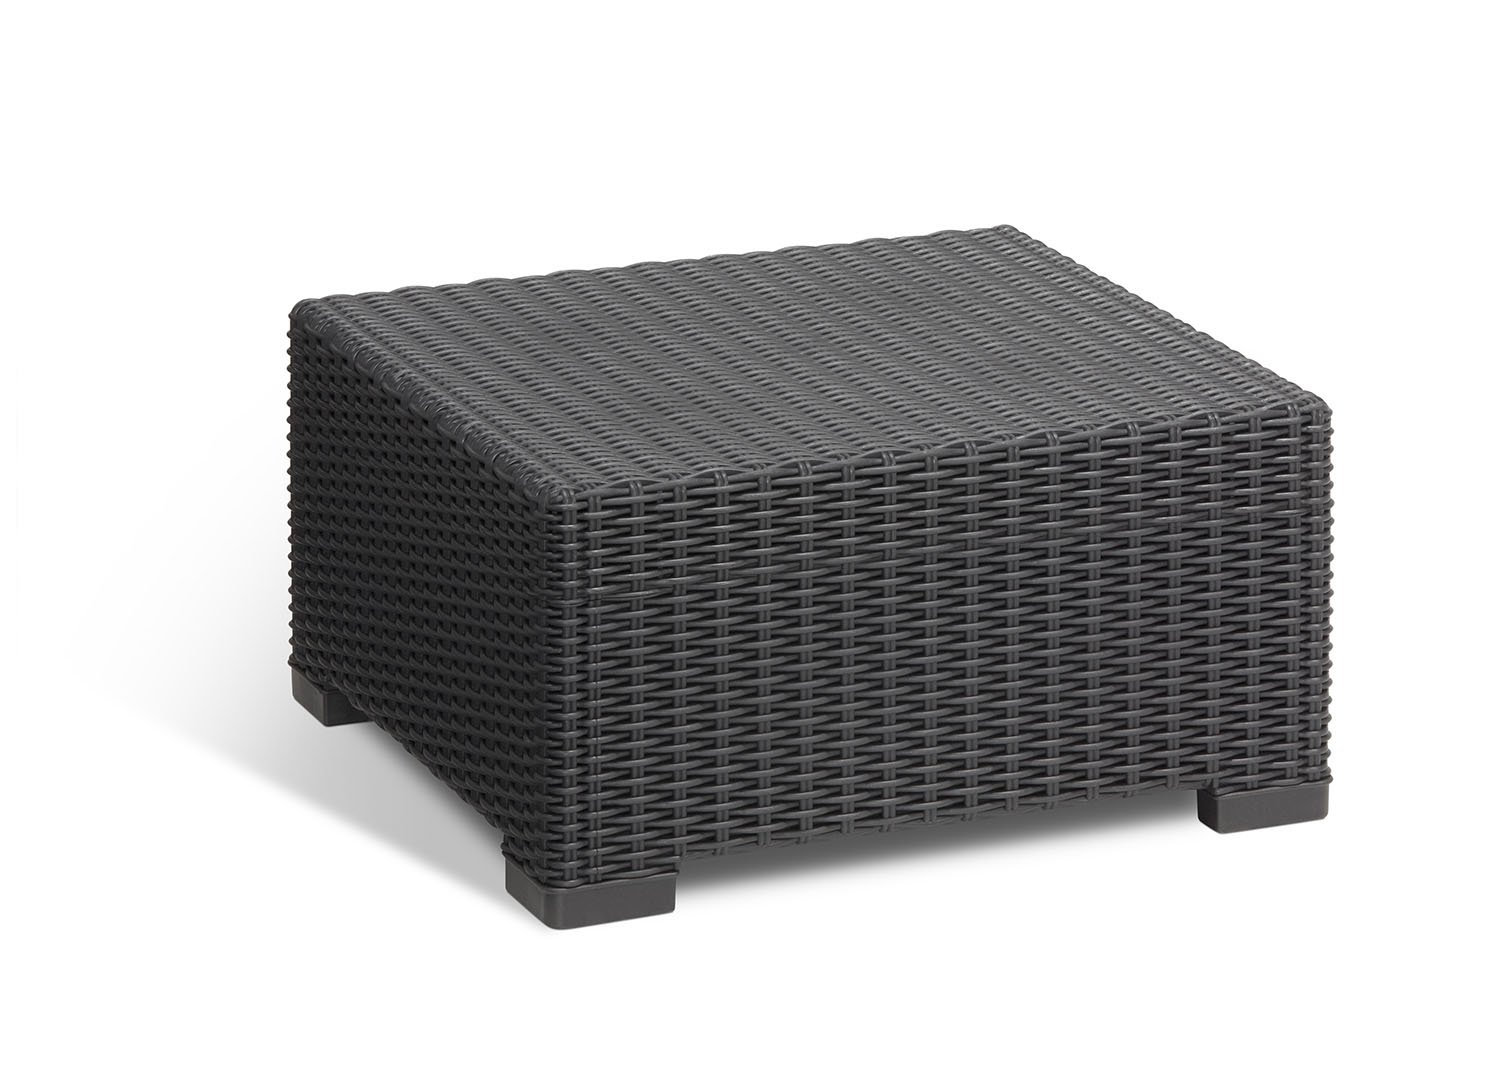 Keter California All-Weather Outdoor Patio Coffee Table in a Resin Plastic Wicker Pattern, Graphite by Keter